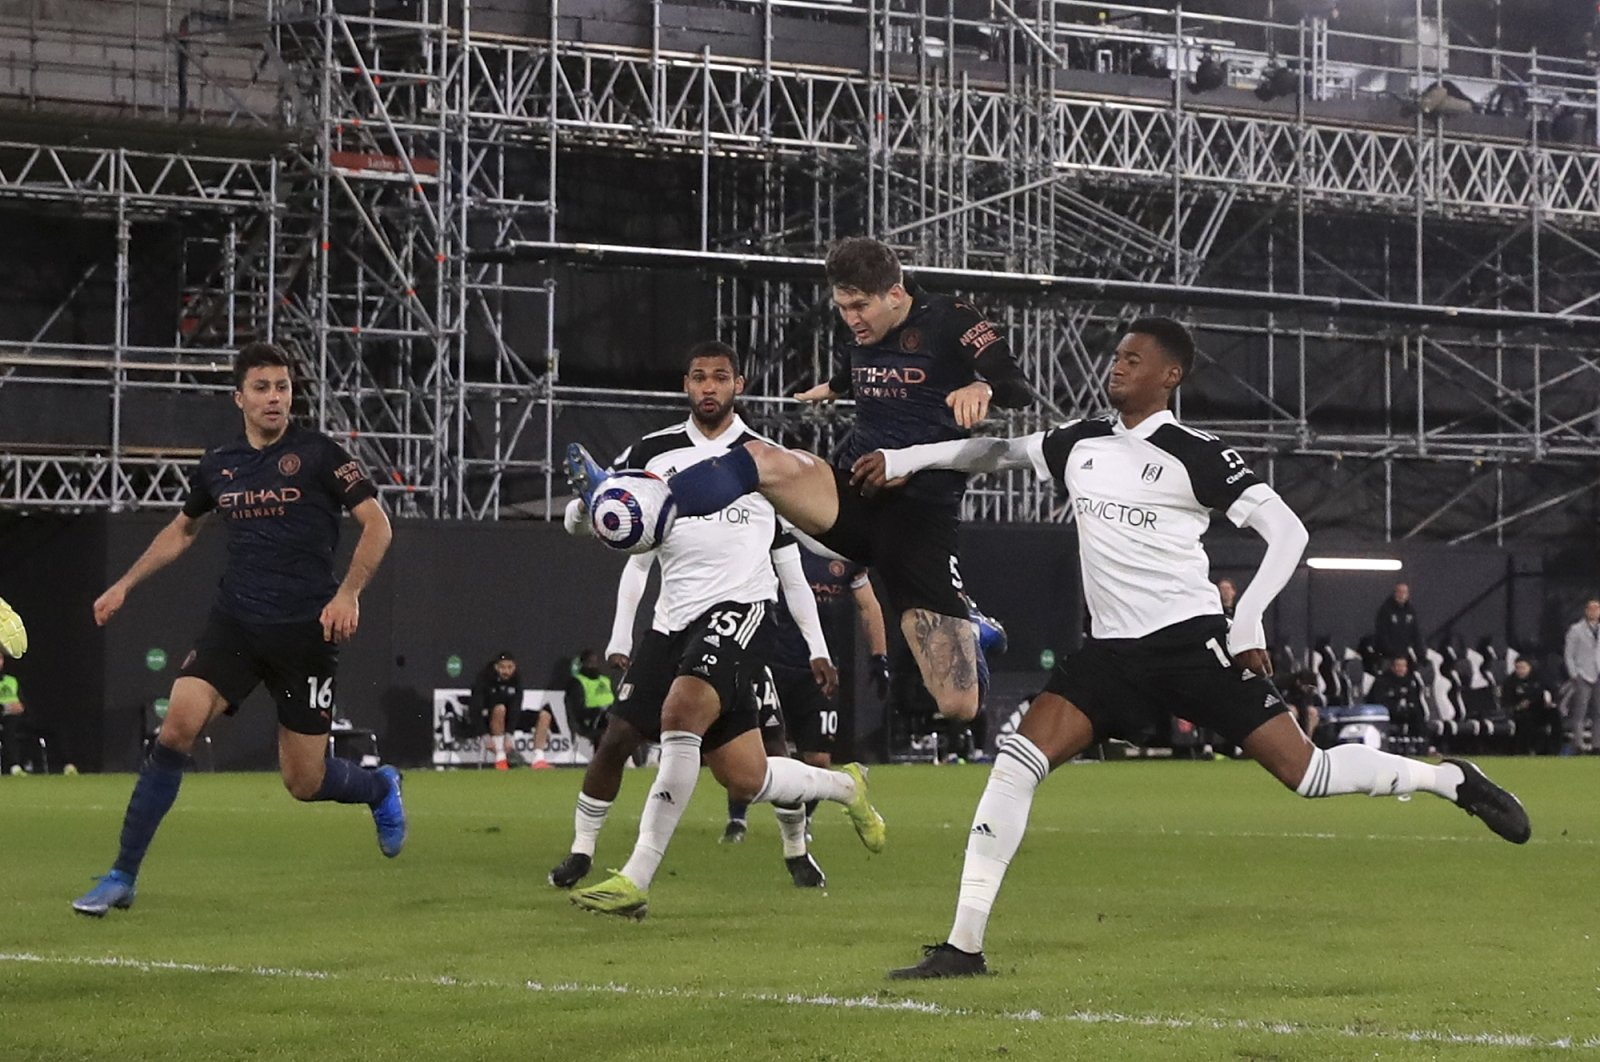 Manchester City's John Stones (2nd R) scores the opening goal during an English Premier League soccer match between Fulham and Manchester City at the Craven Cottage stadium in London, England, March 13, 2021. (AP Photo)